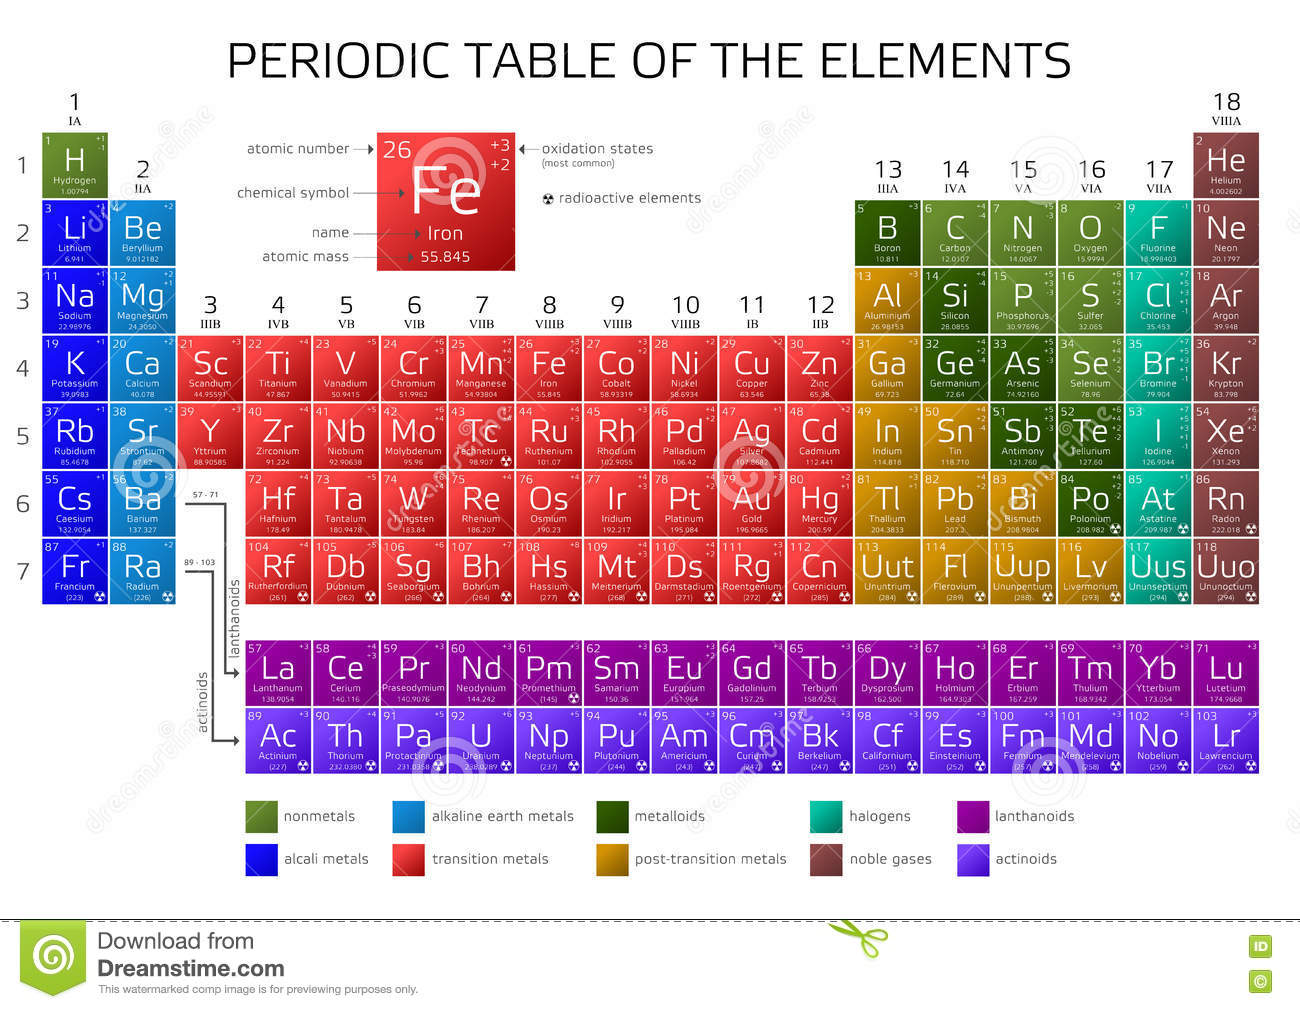 Mendeleevs periodic table of the elements stock illustration royalty free illustration download mendeleevs periodic table gamestrikefo Gallery